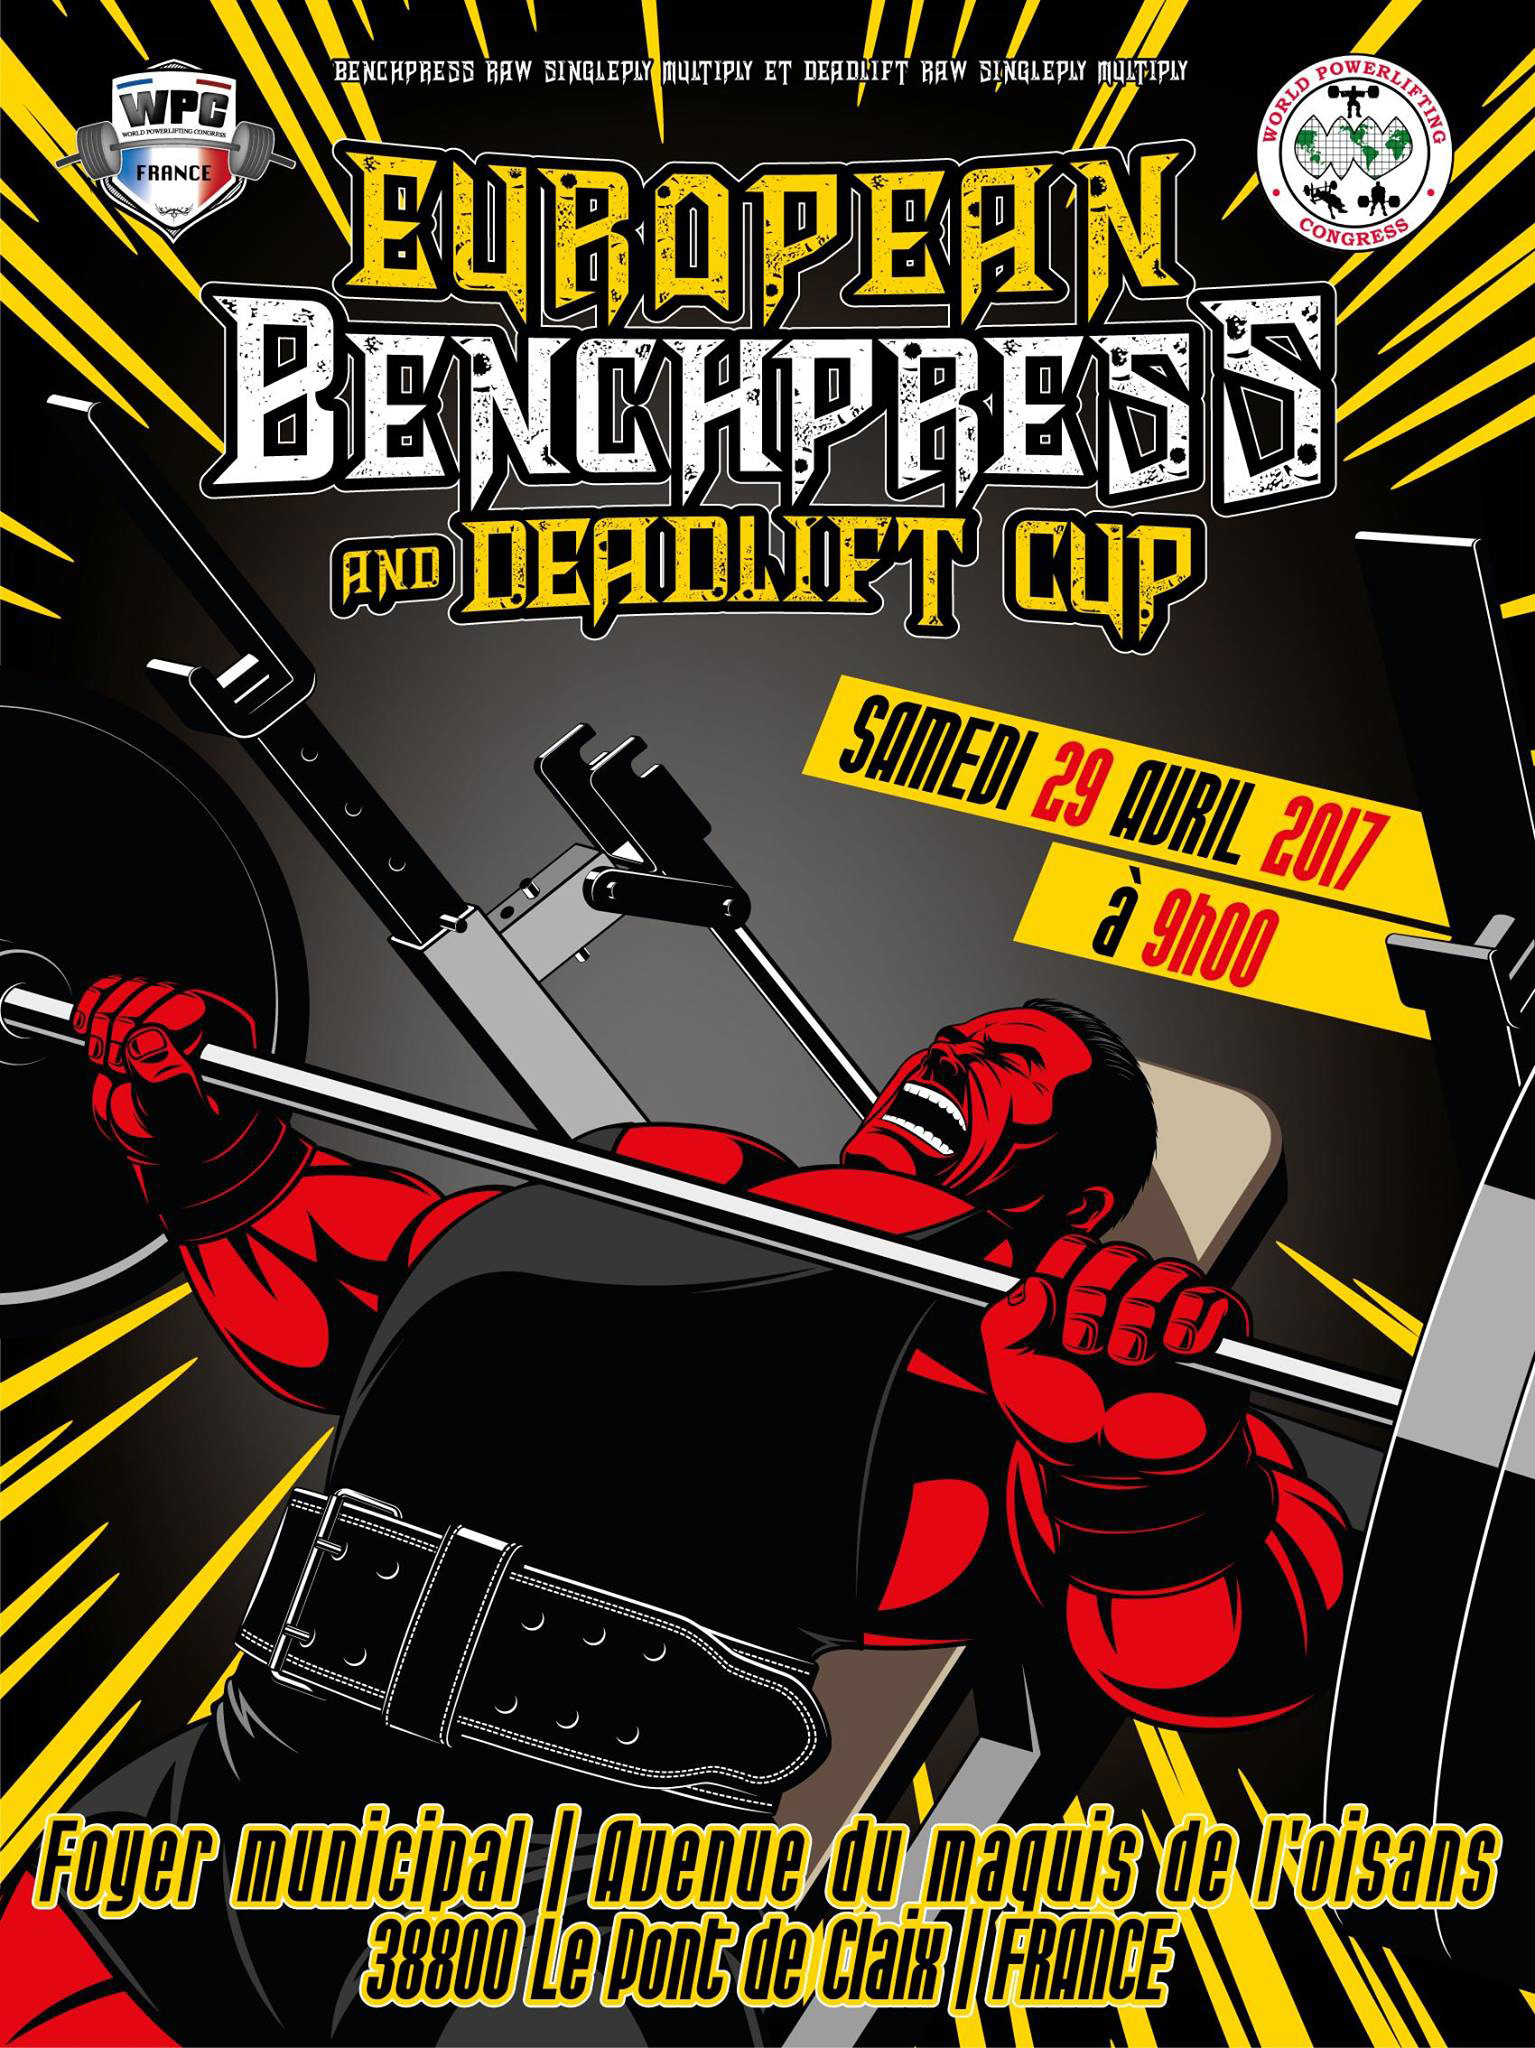 european cup benchpress deadlift warrior gear